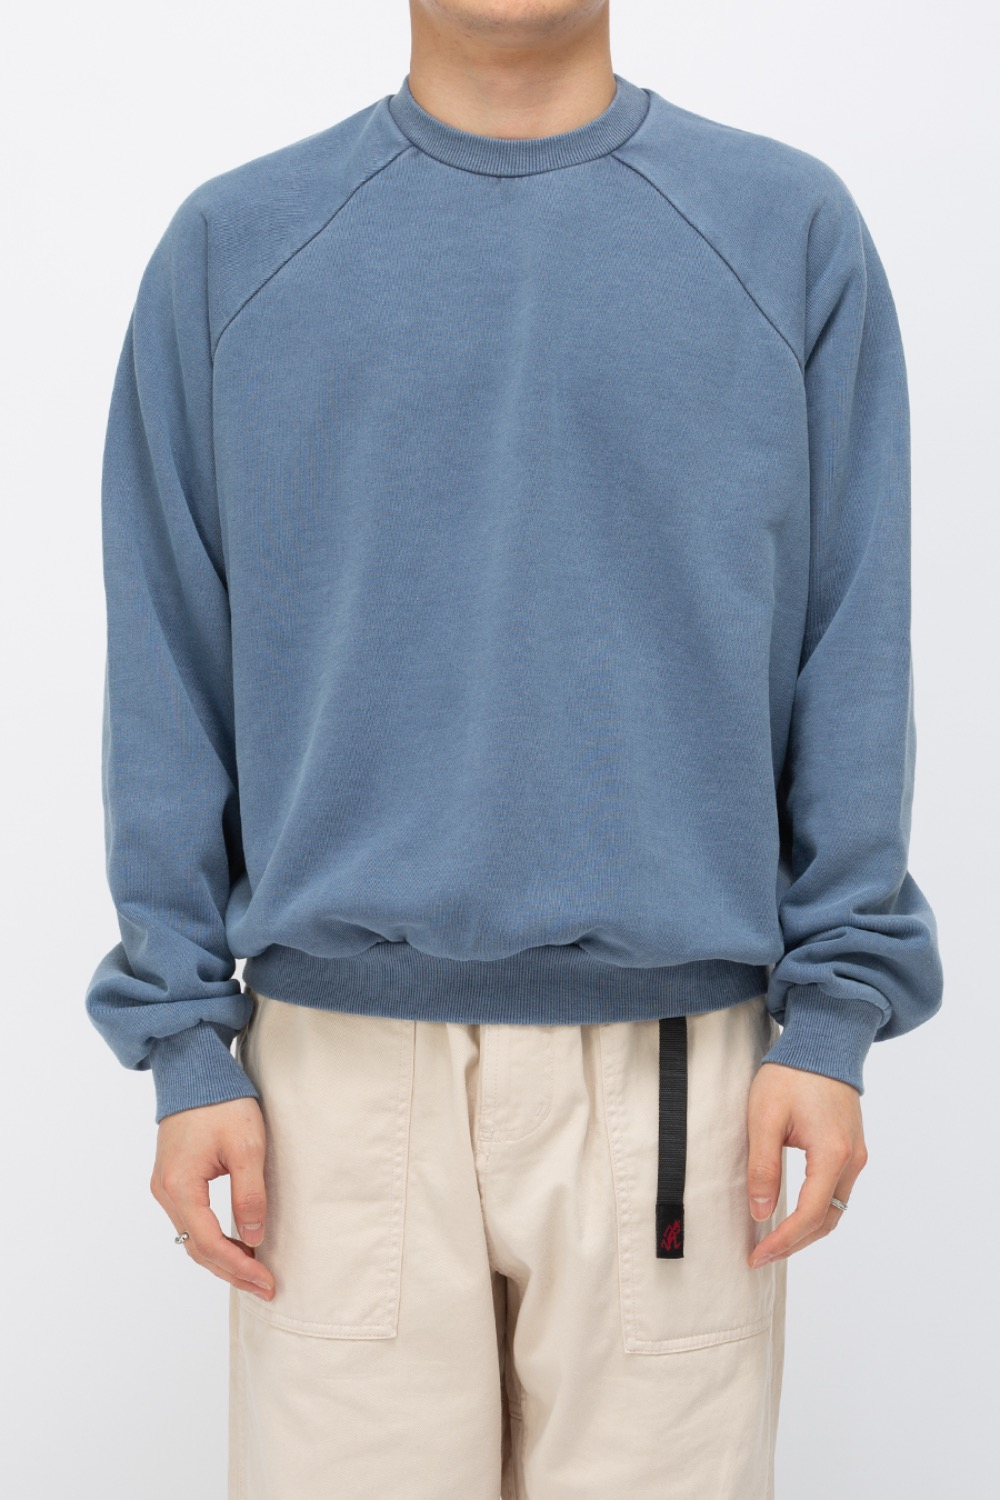 HEAVY WEIGHT OVERSIZE SWEATSHIRT WASHED(PREMIUM BASIC) BLUE